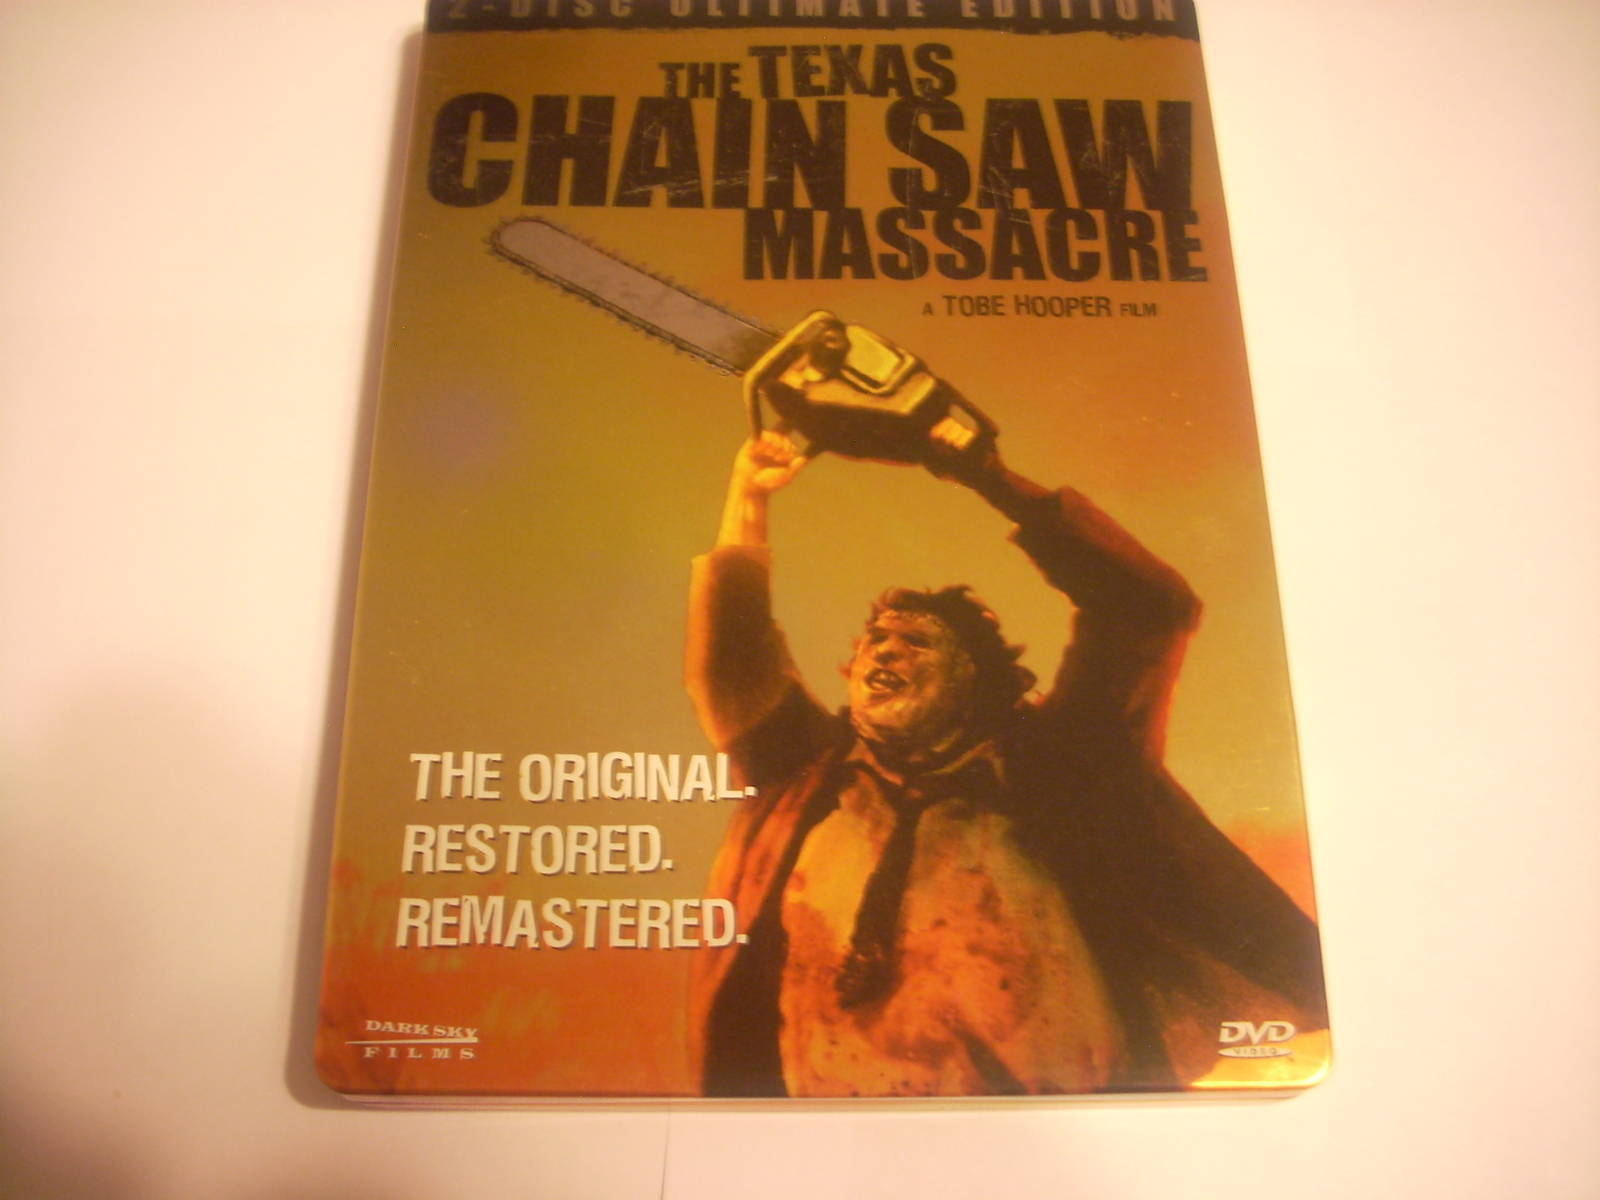 The Texas Chainsaw Massacre 2-Disc Ultimate Edition Steelbook DVD